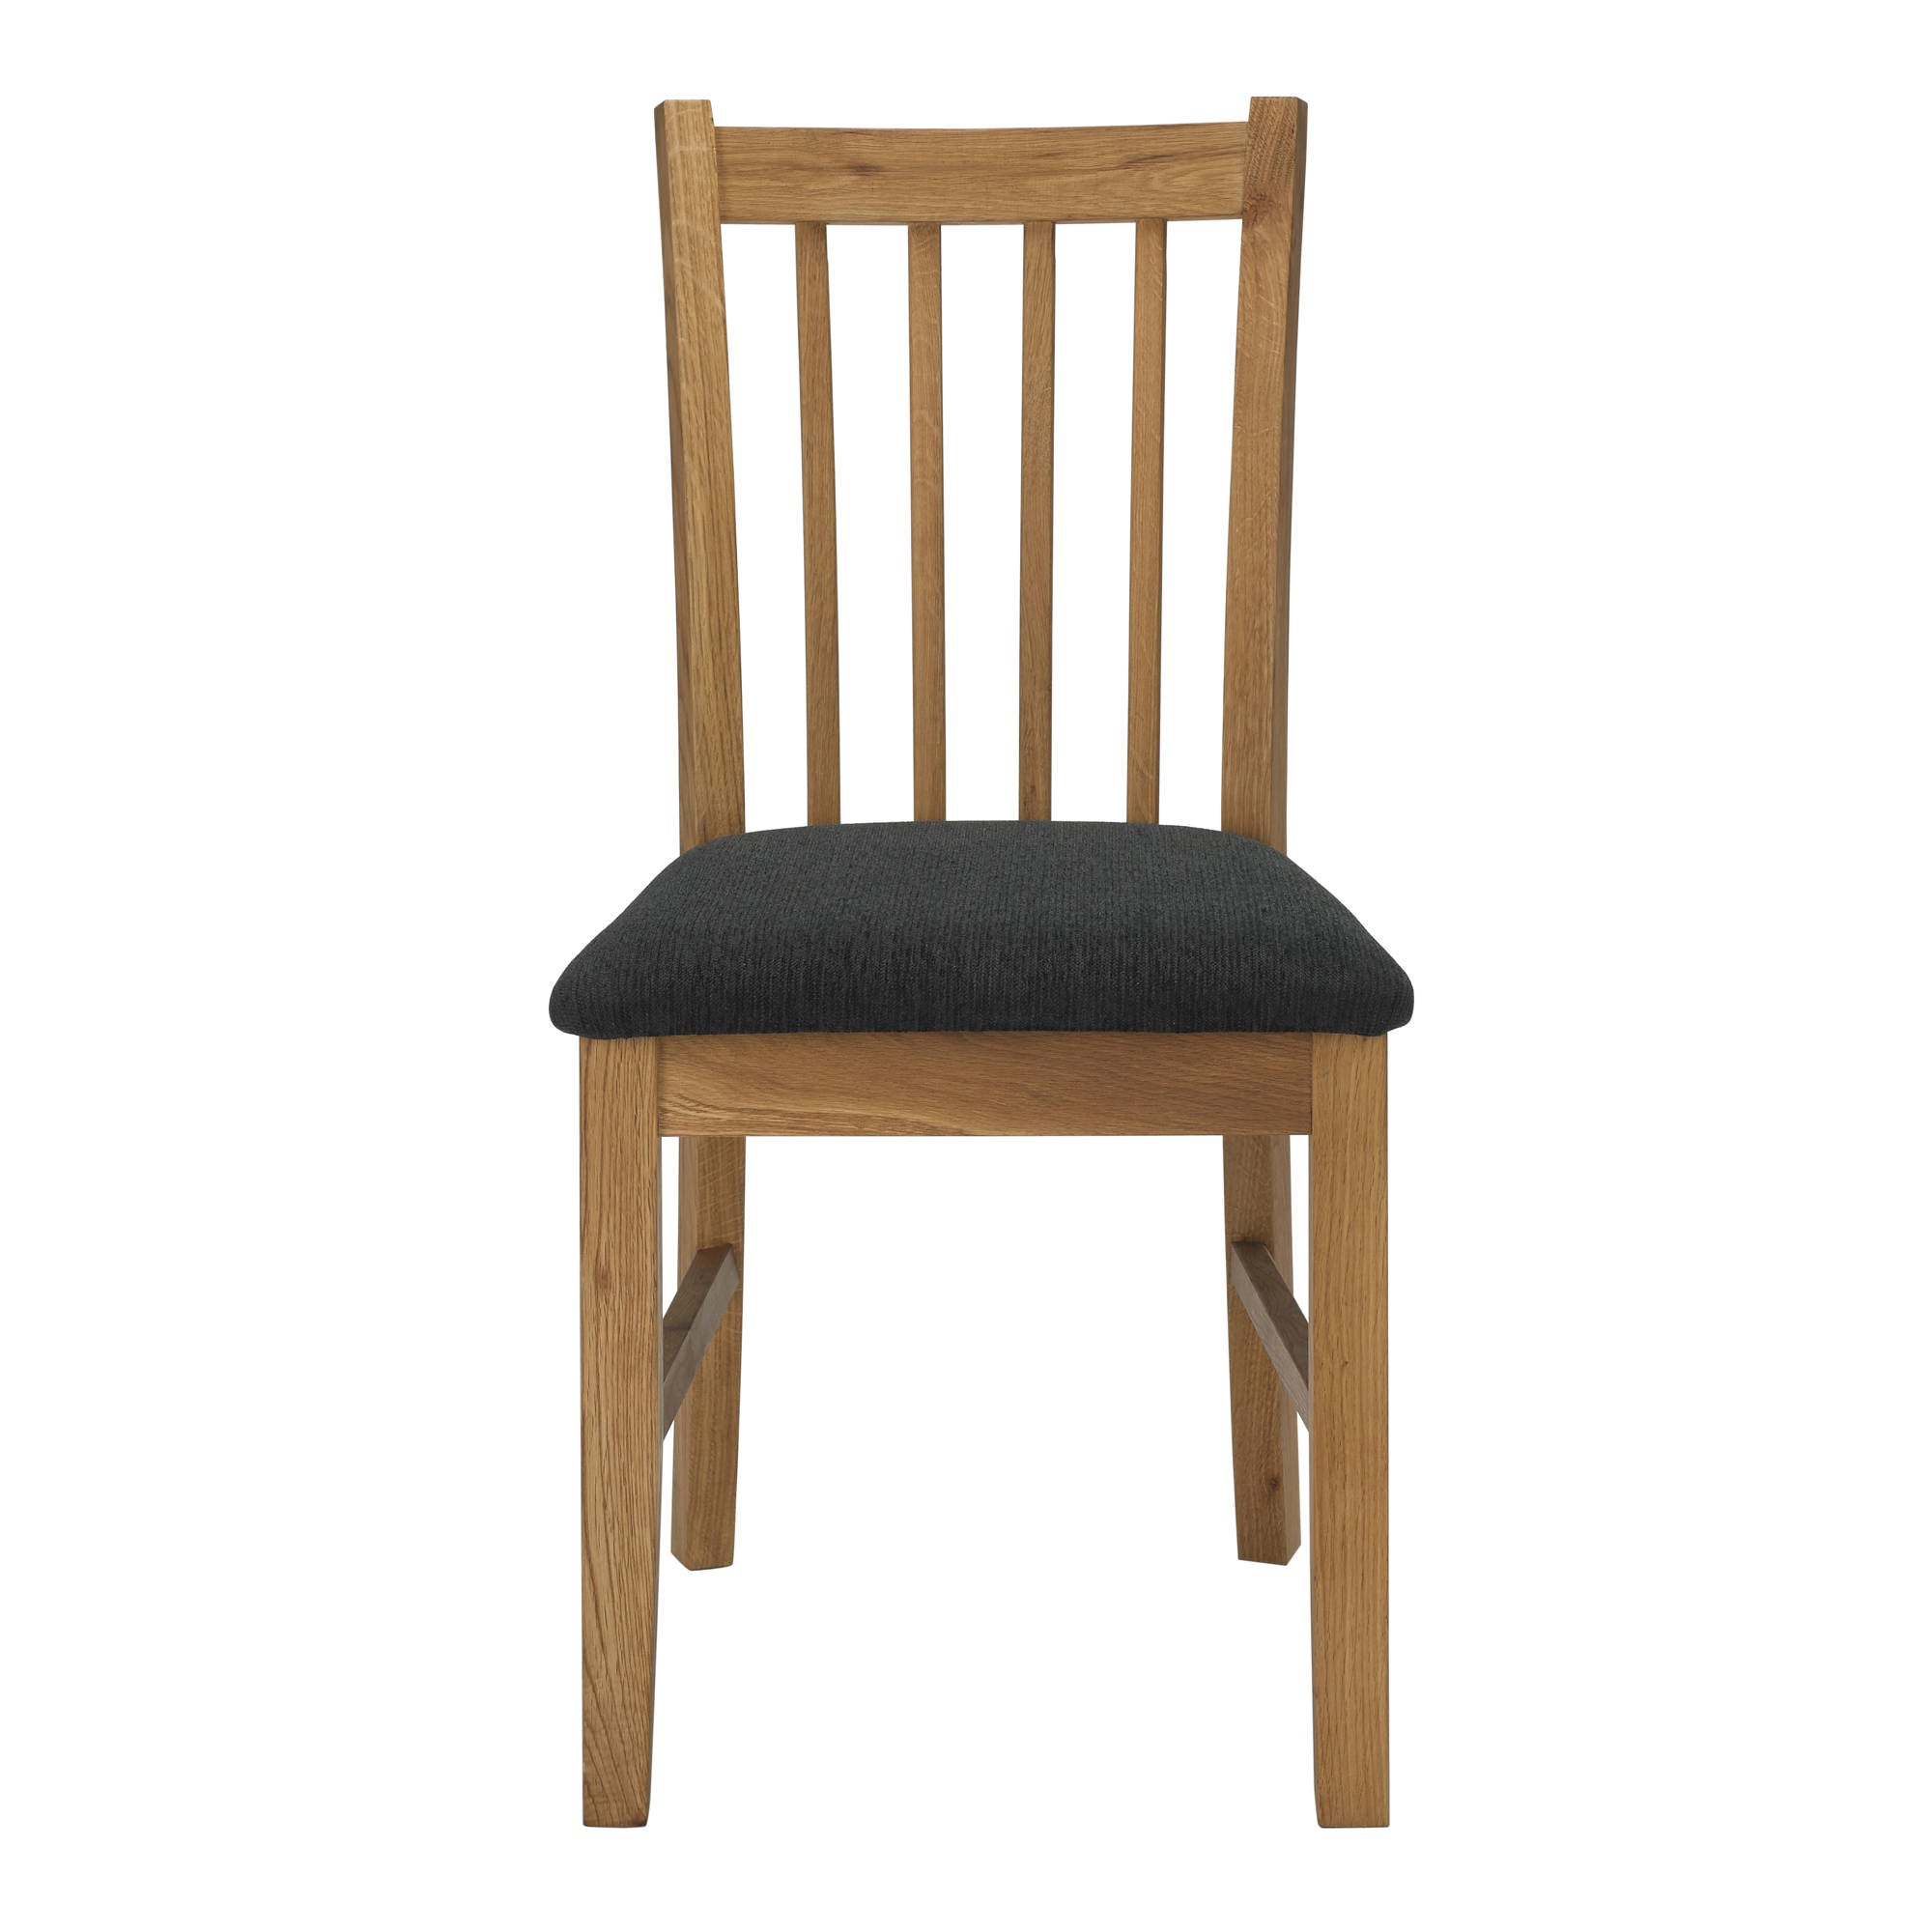 Kilby Dining Chairs Pair - Ezzo